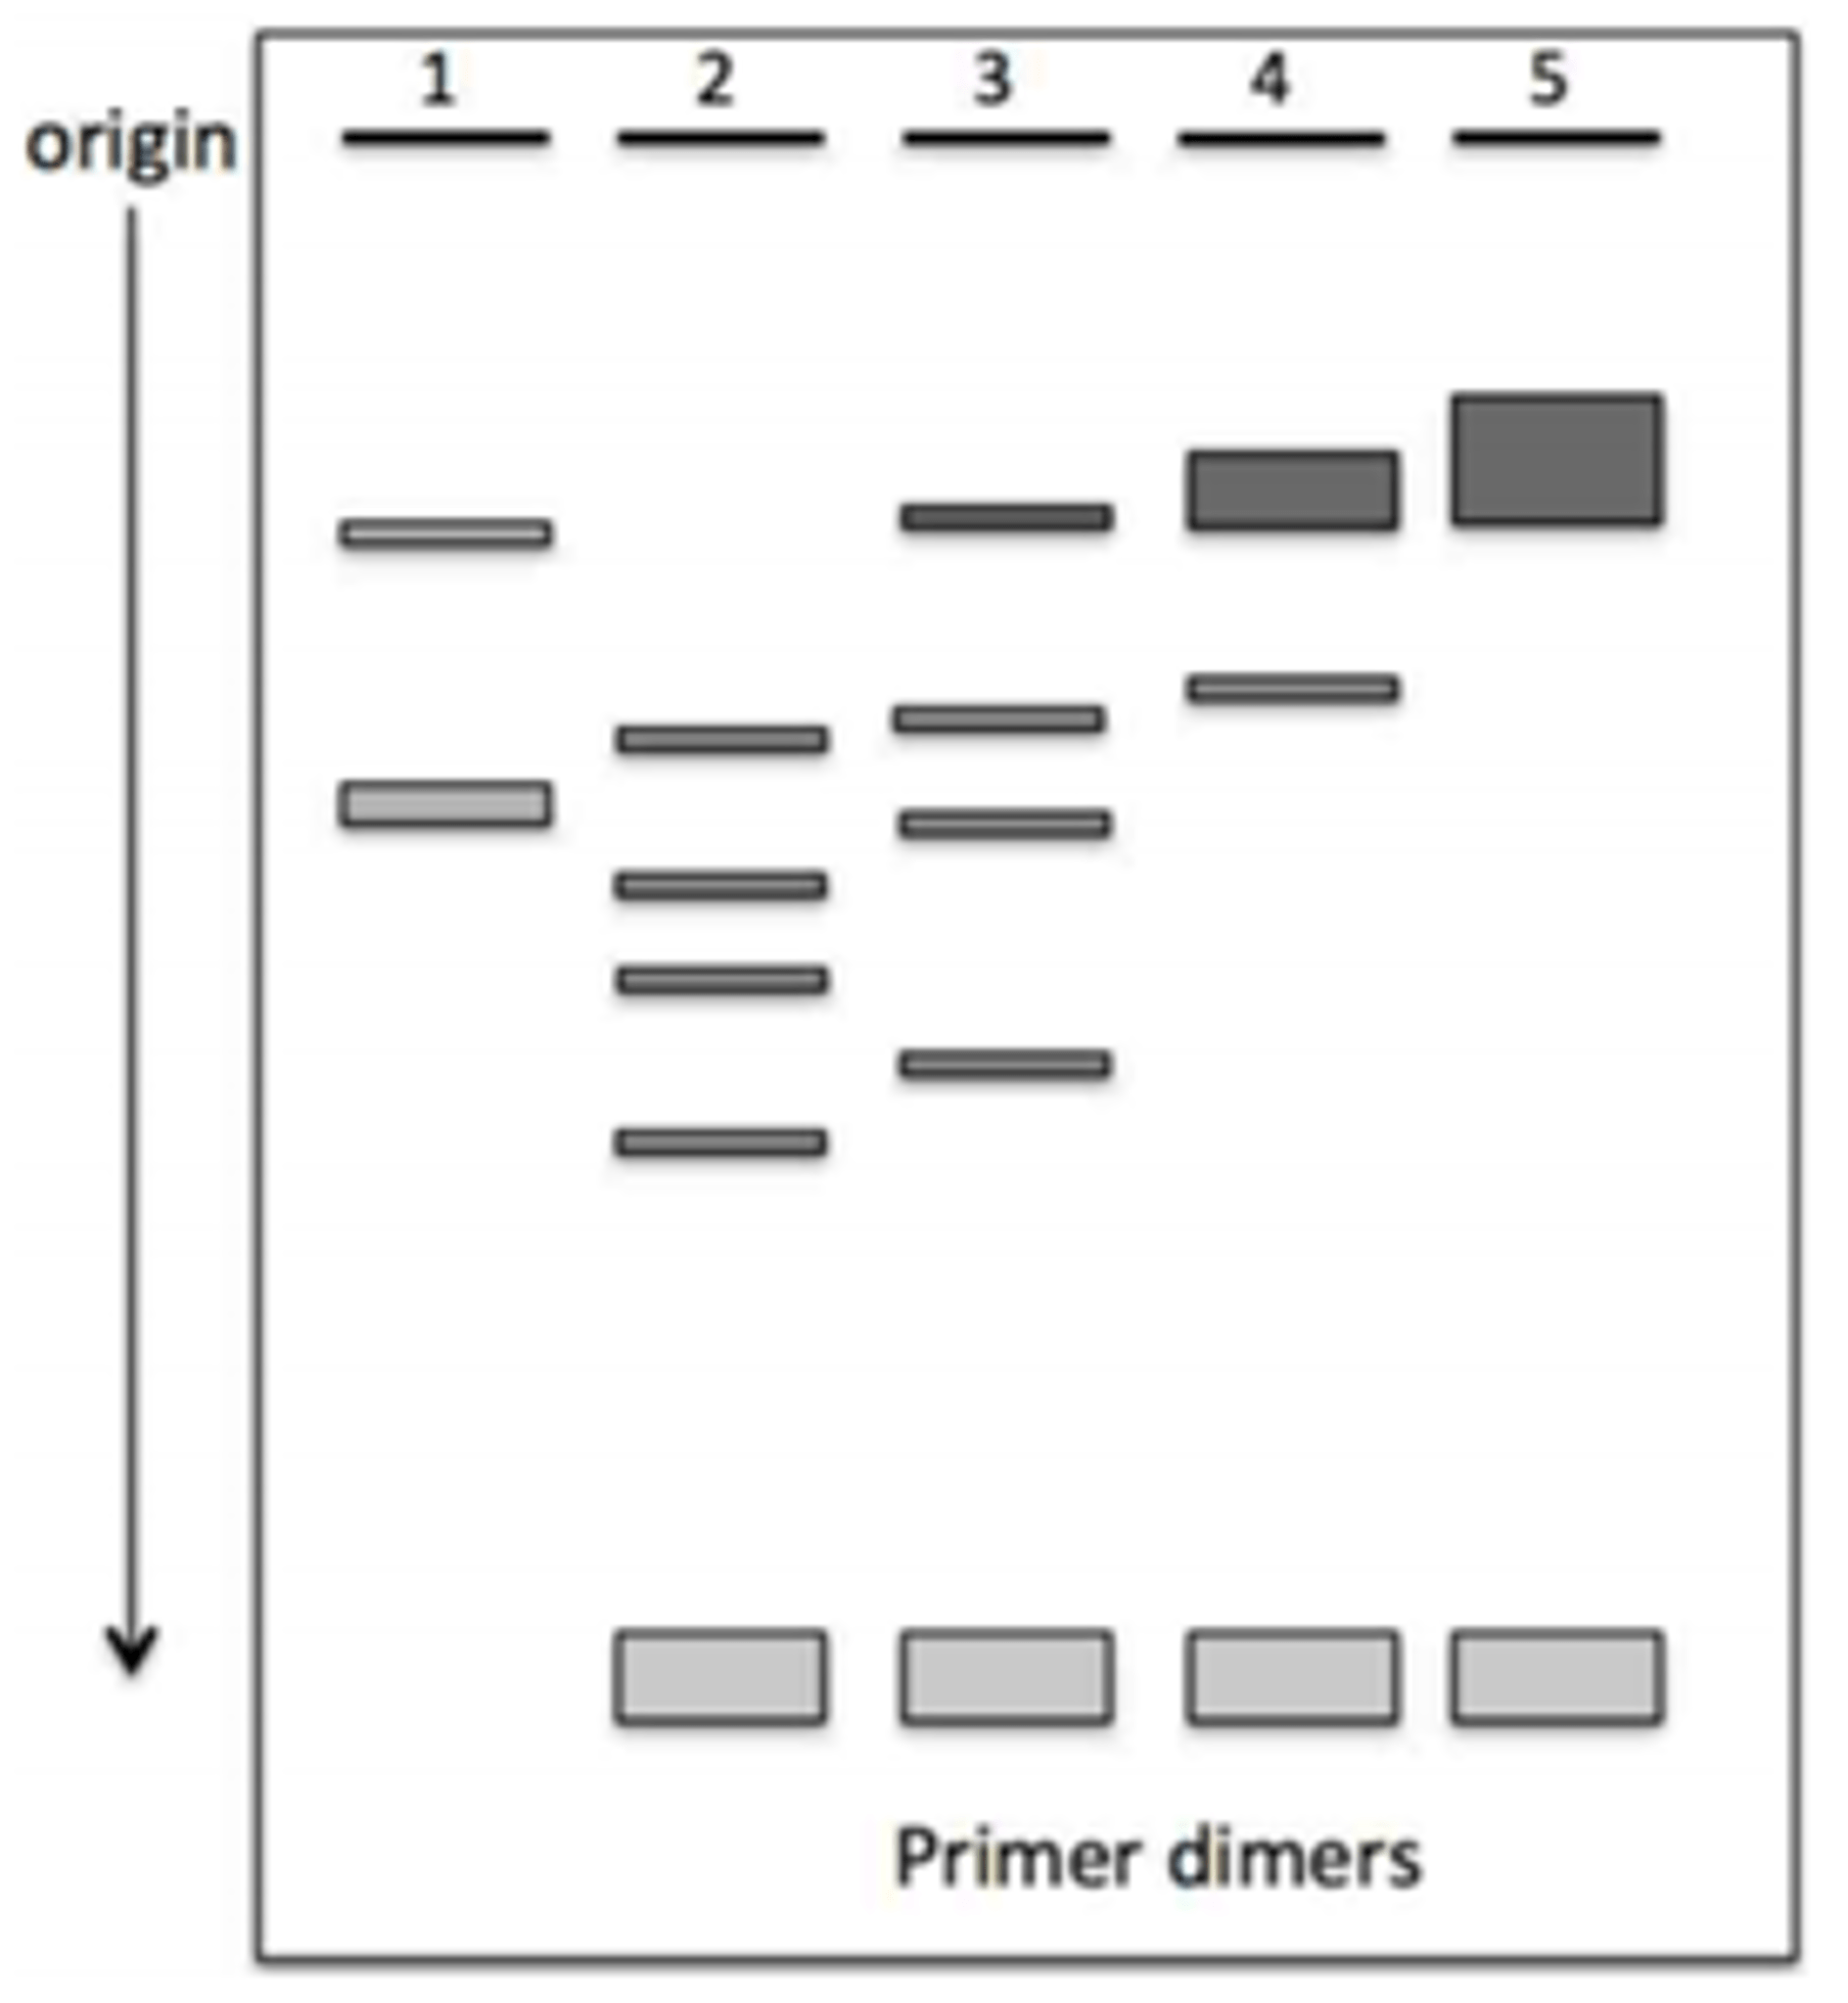 Solved The Diagram Is An Agarose Gel Profile Of Fragments